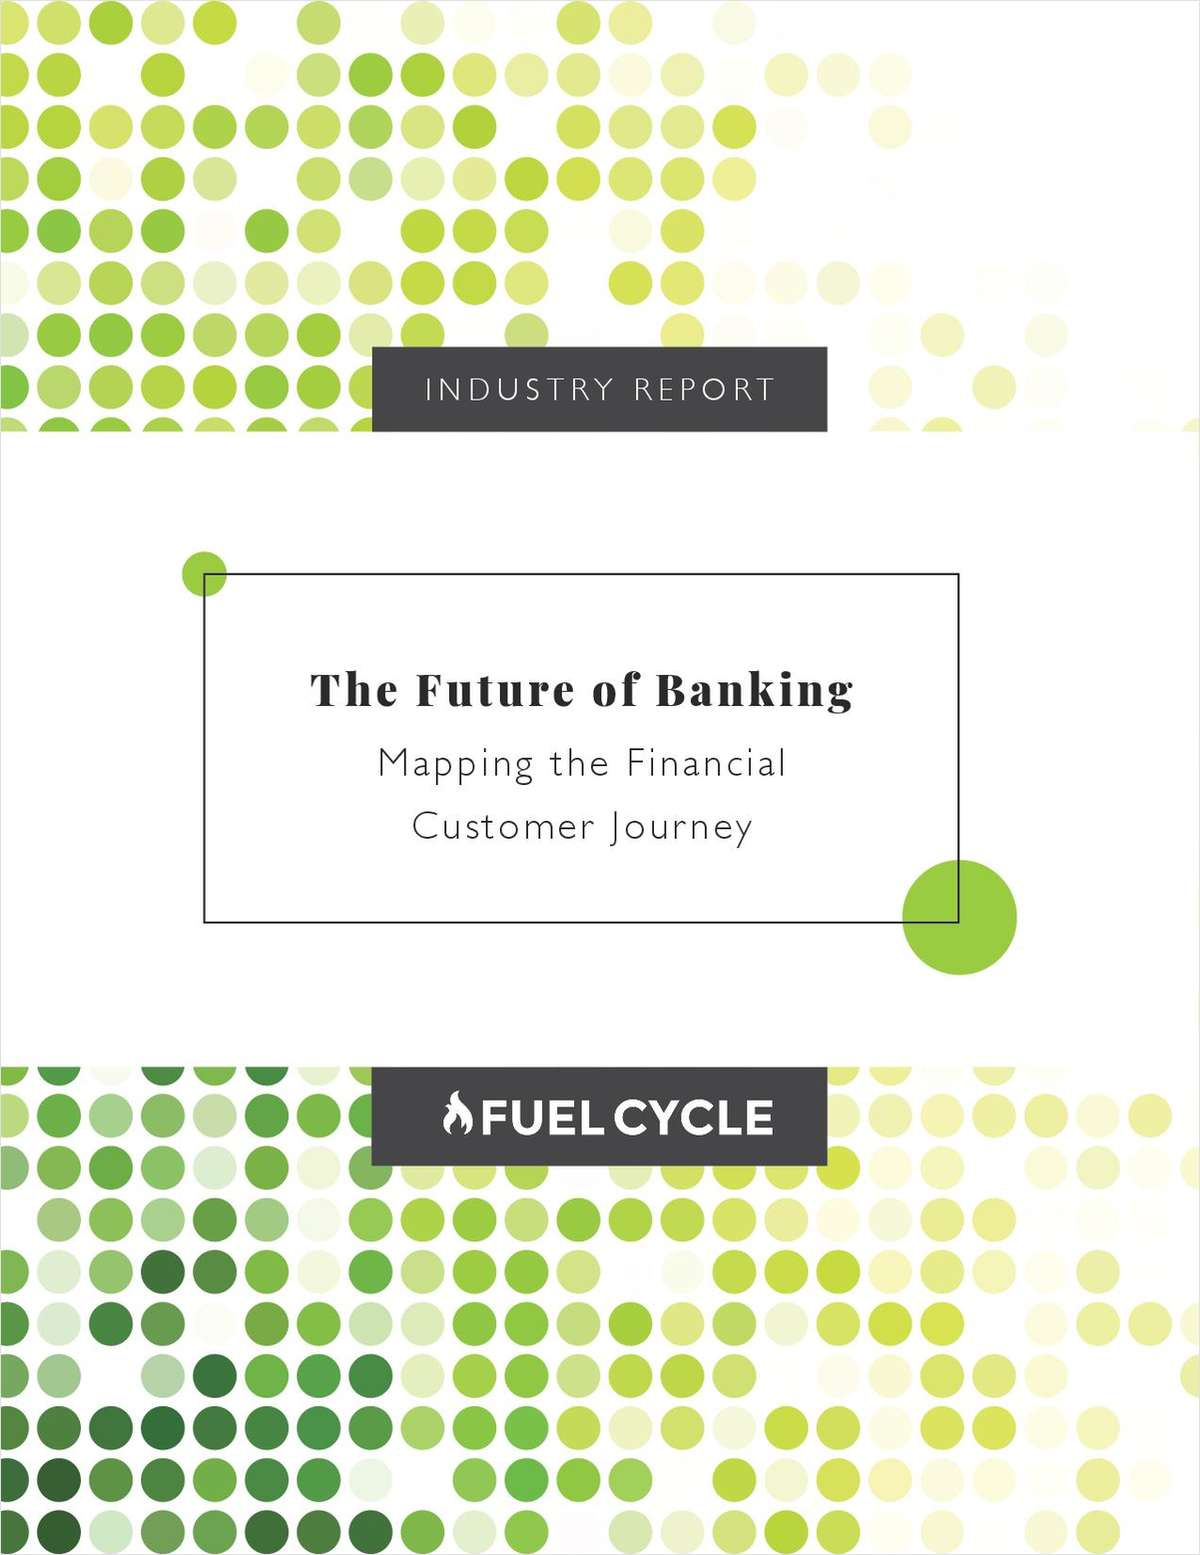 The Future of Banking: Mapping the Financial Customer Journey